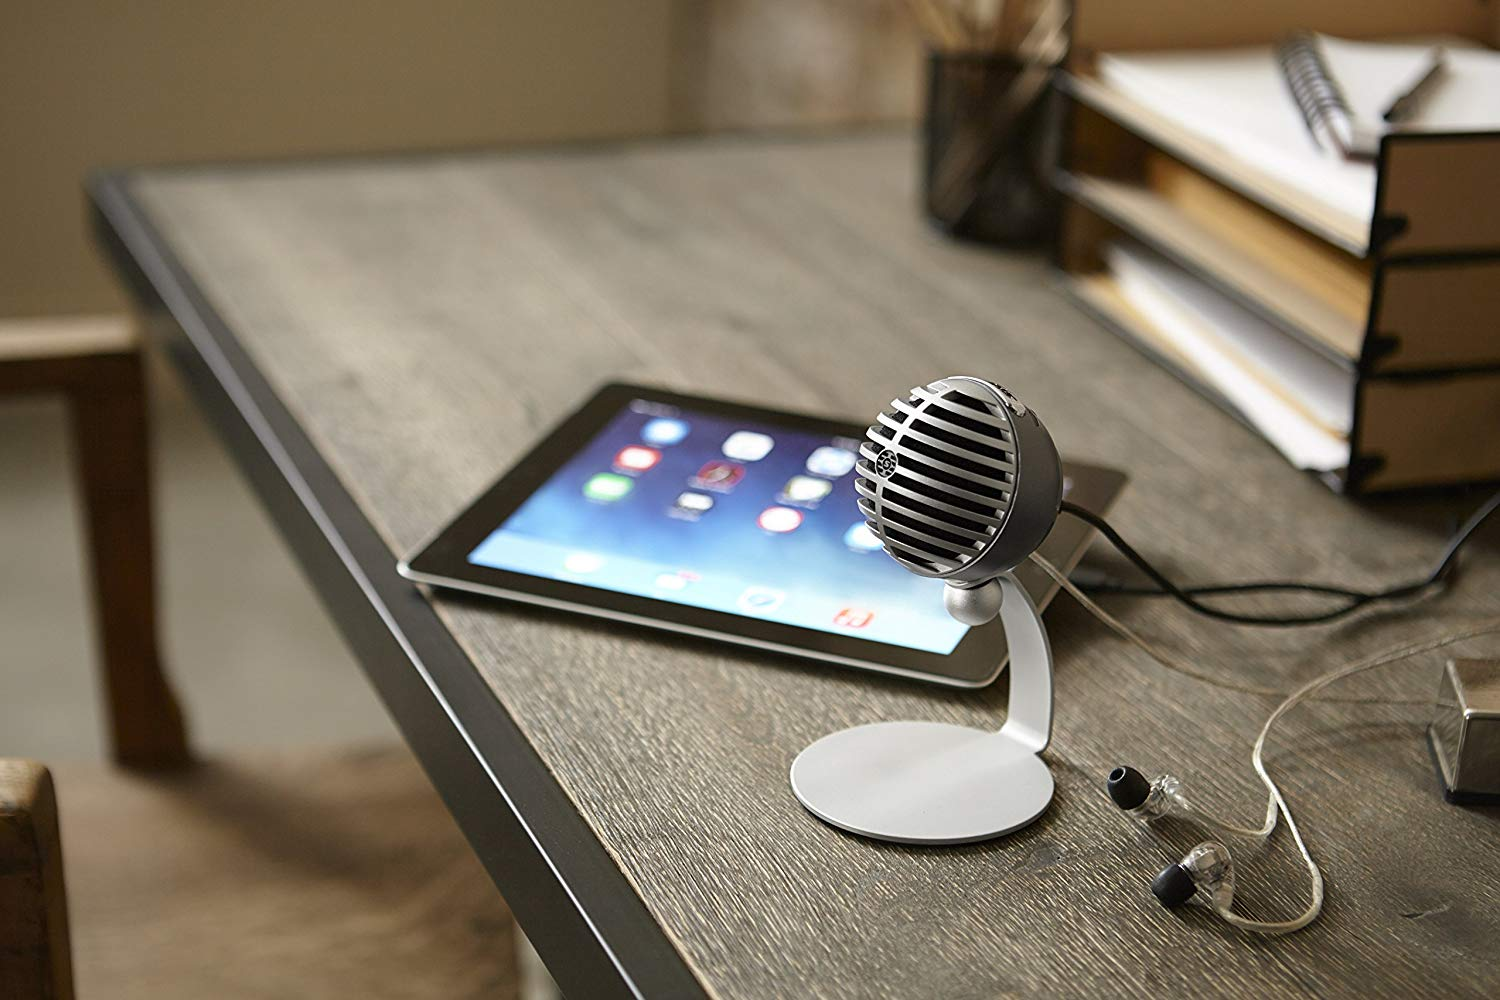 The Shure MV5 Digital Condenser Mic sitting on a desk